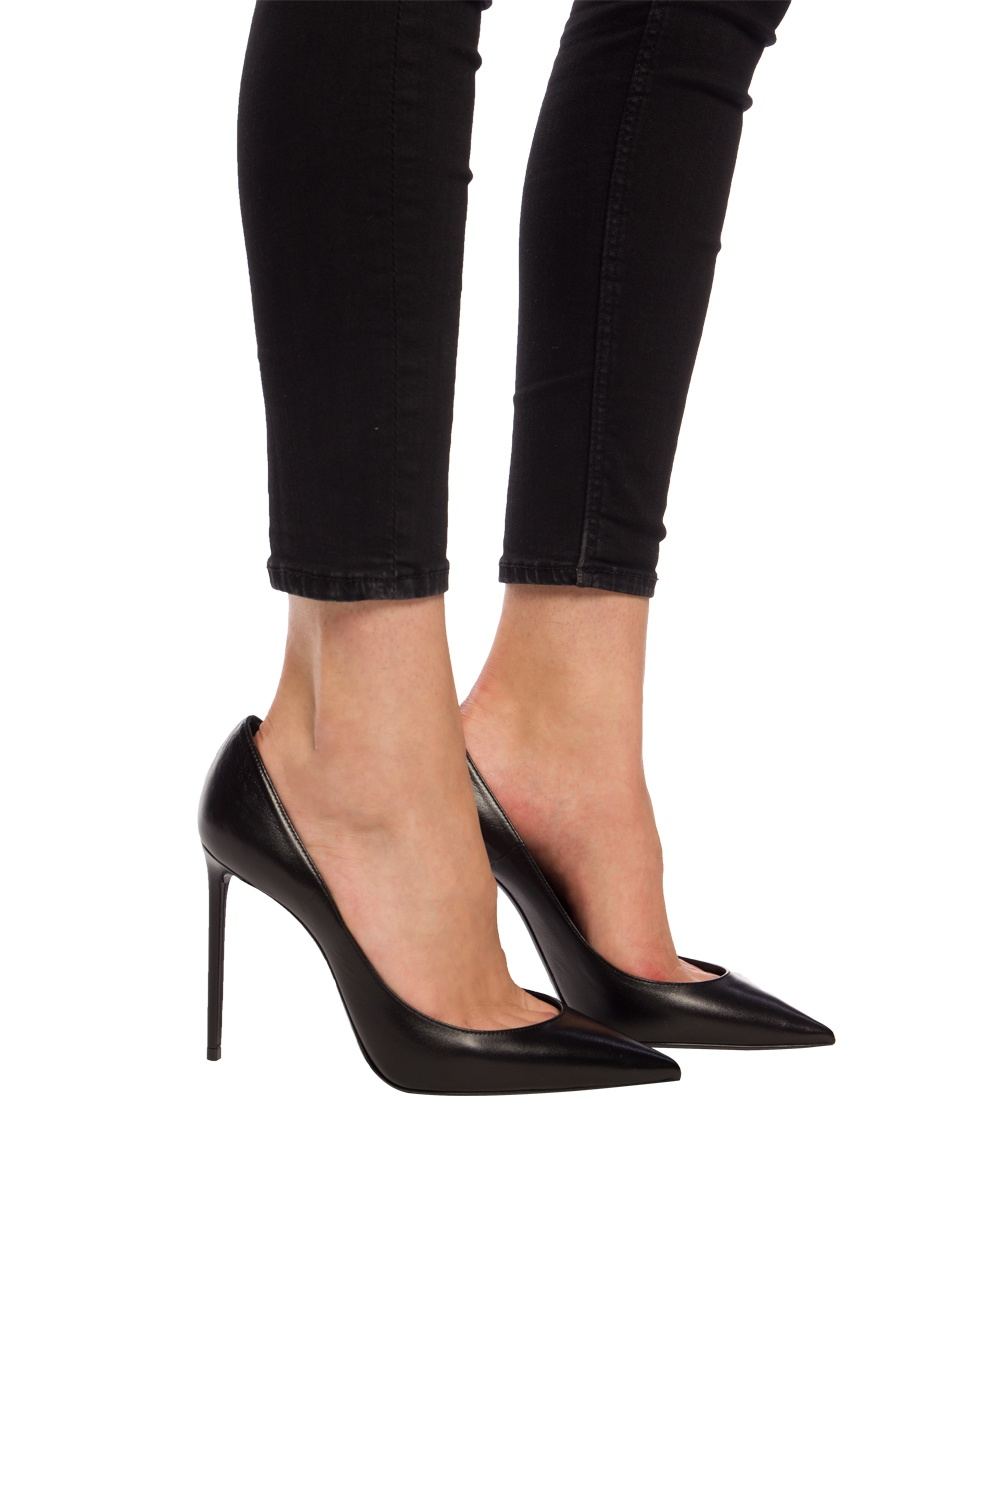 Saint Laurent 'Zoe' stiletto pumps